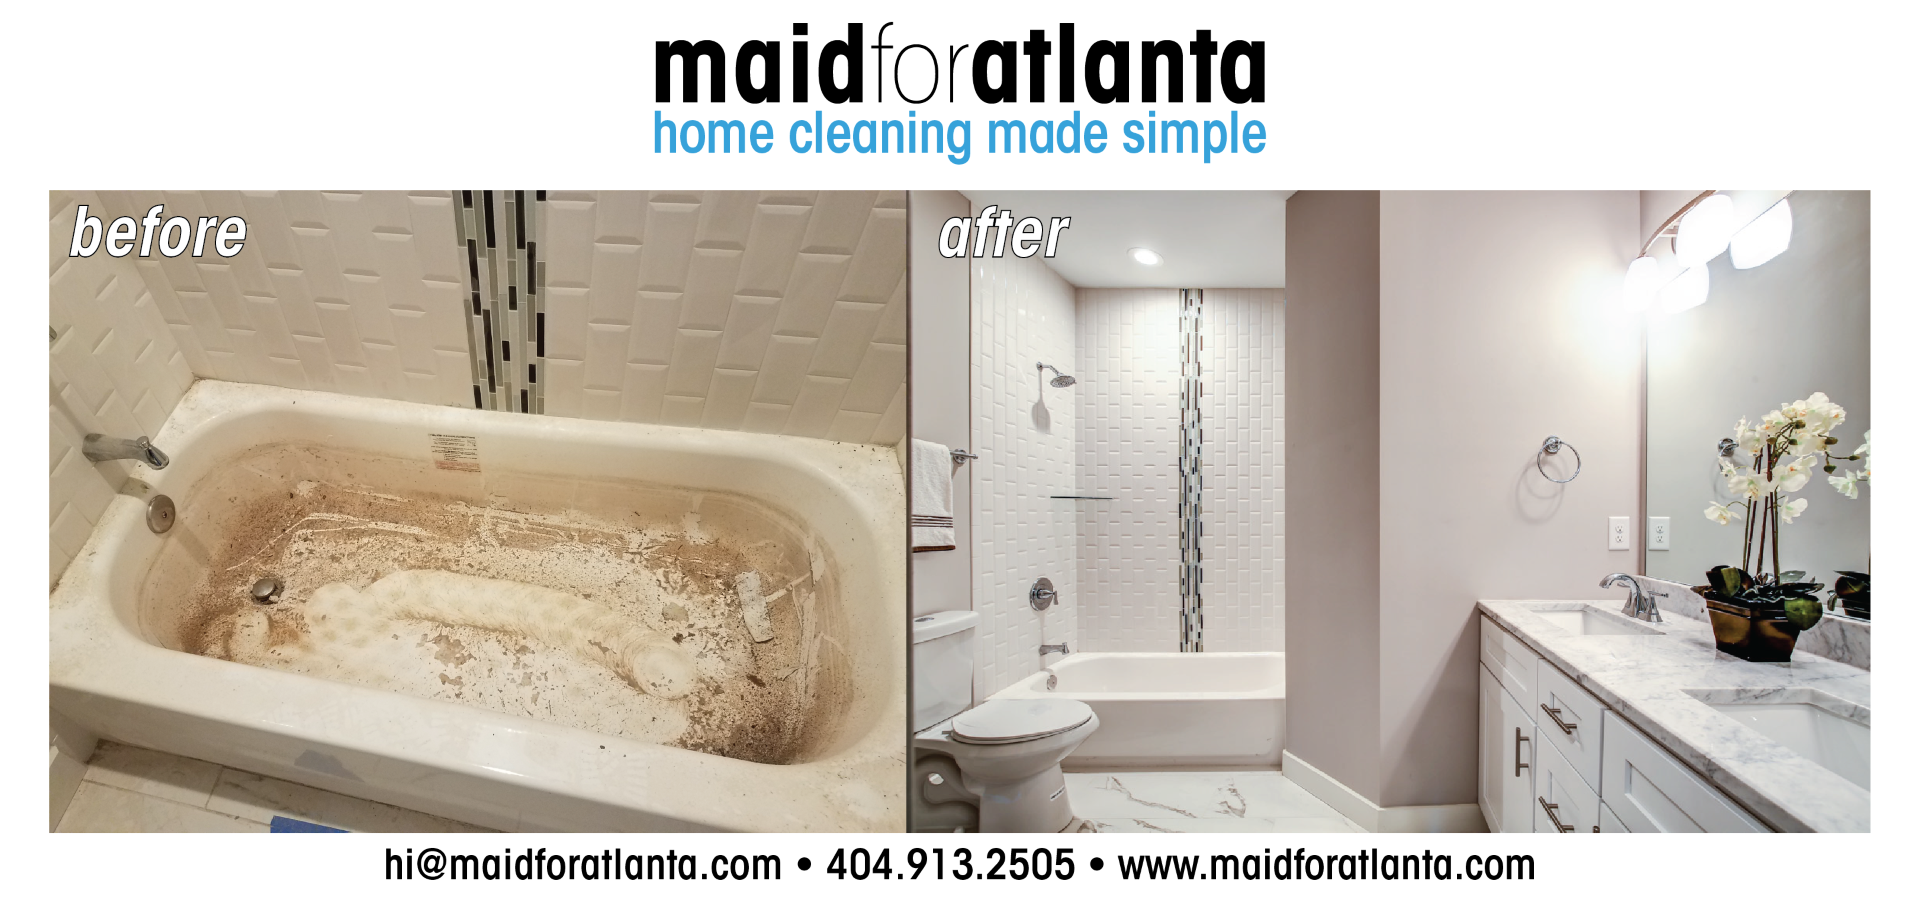 Maid For Atlanta - Before-After Dirty Tub